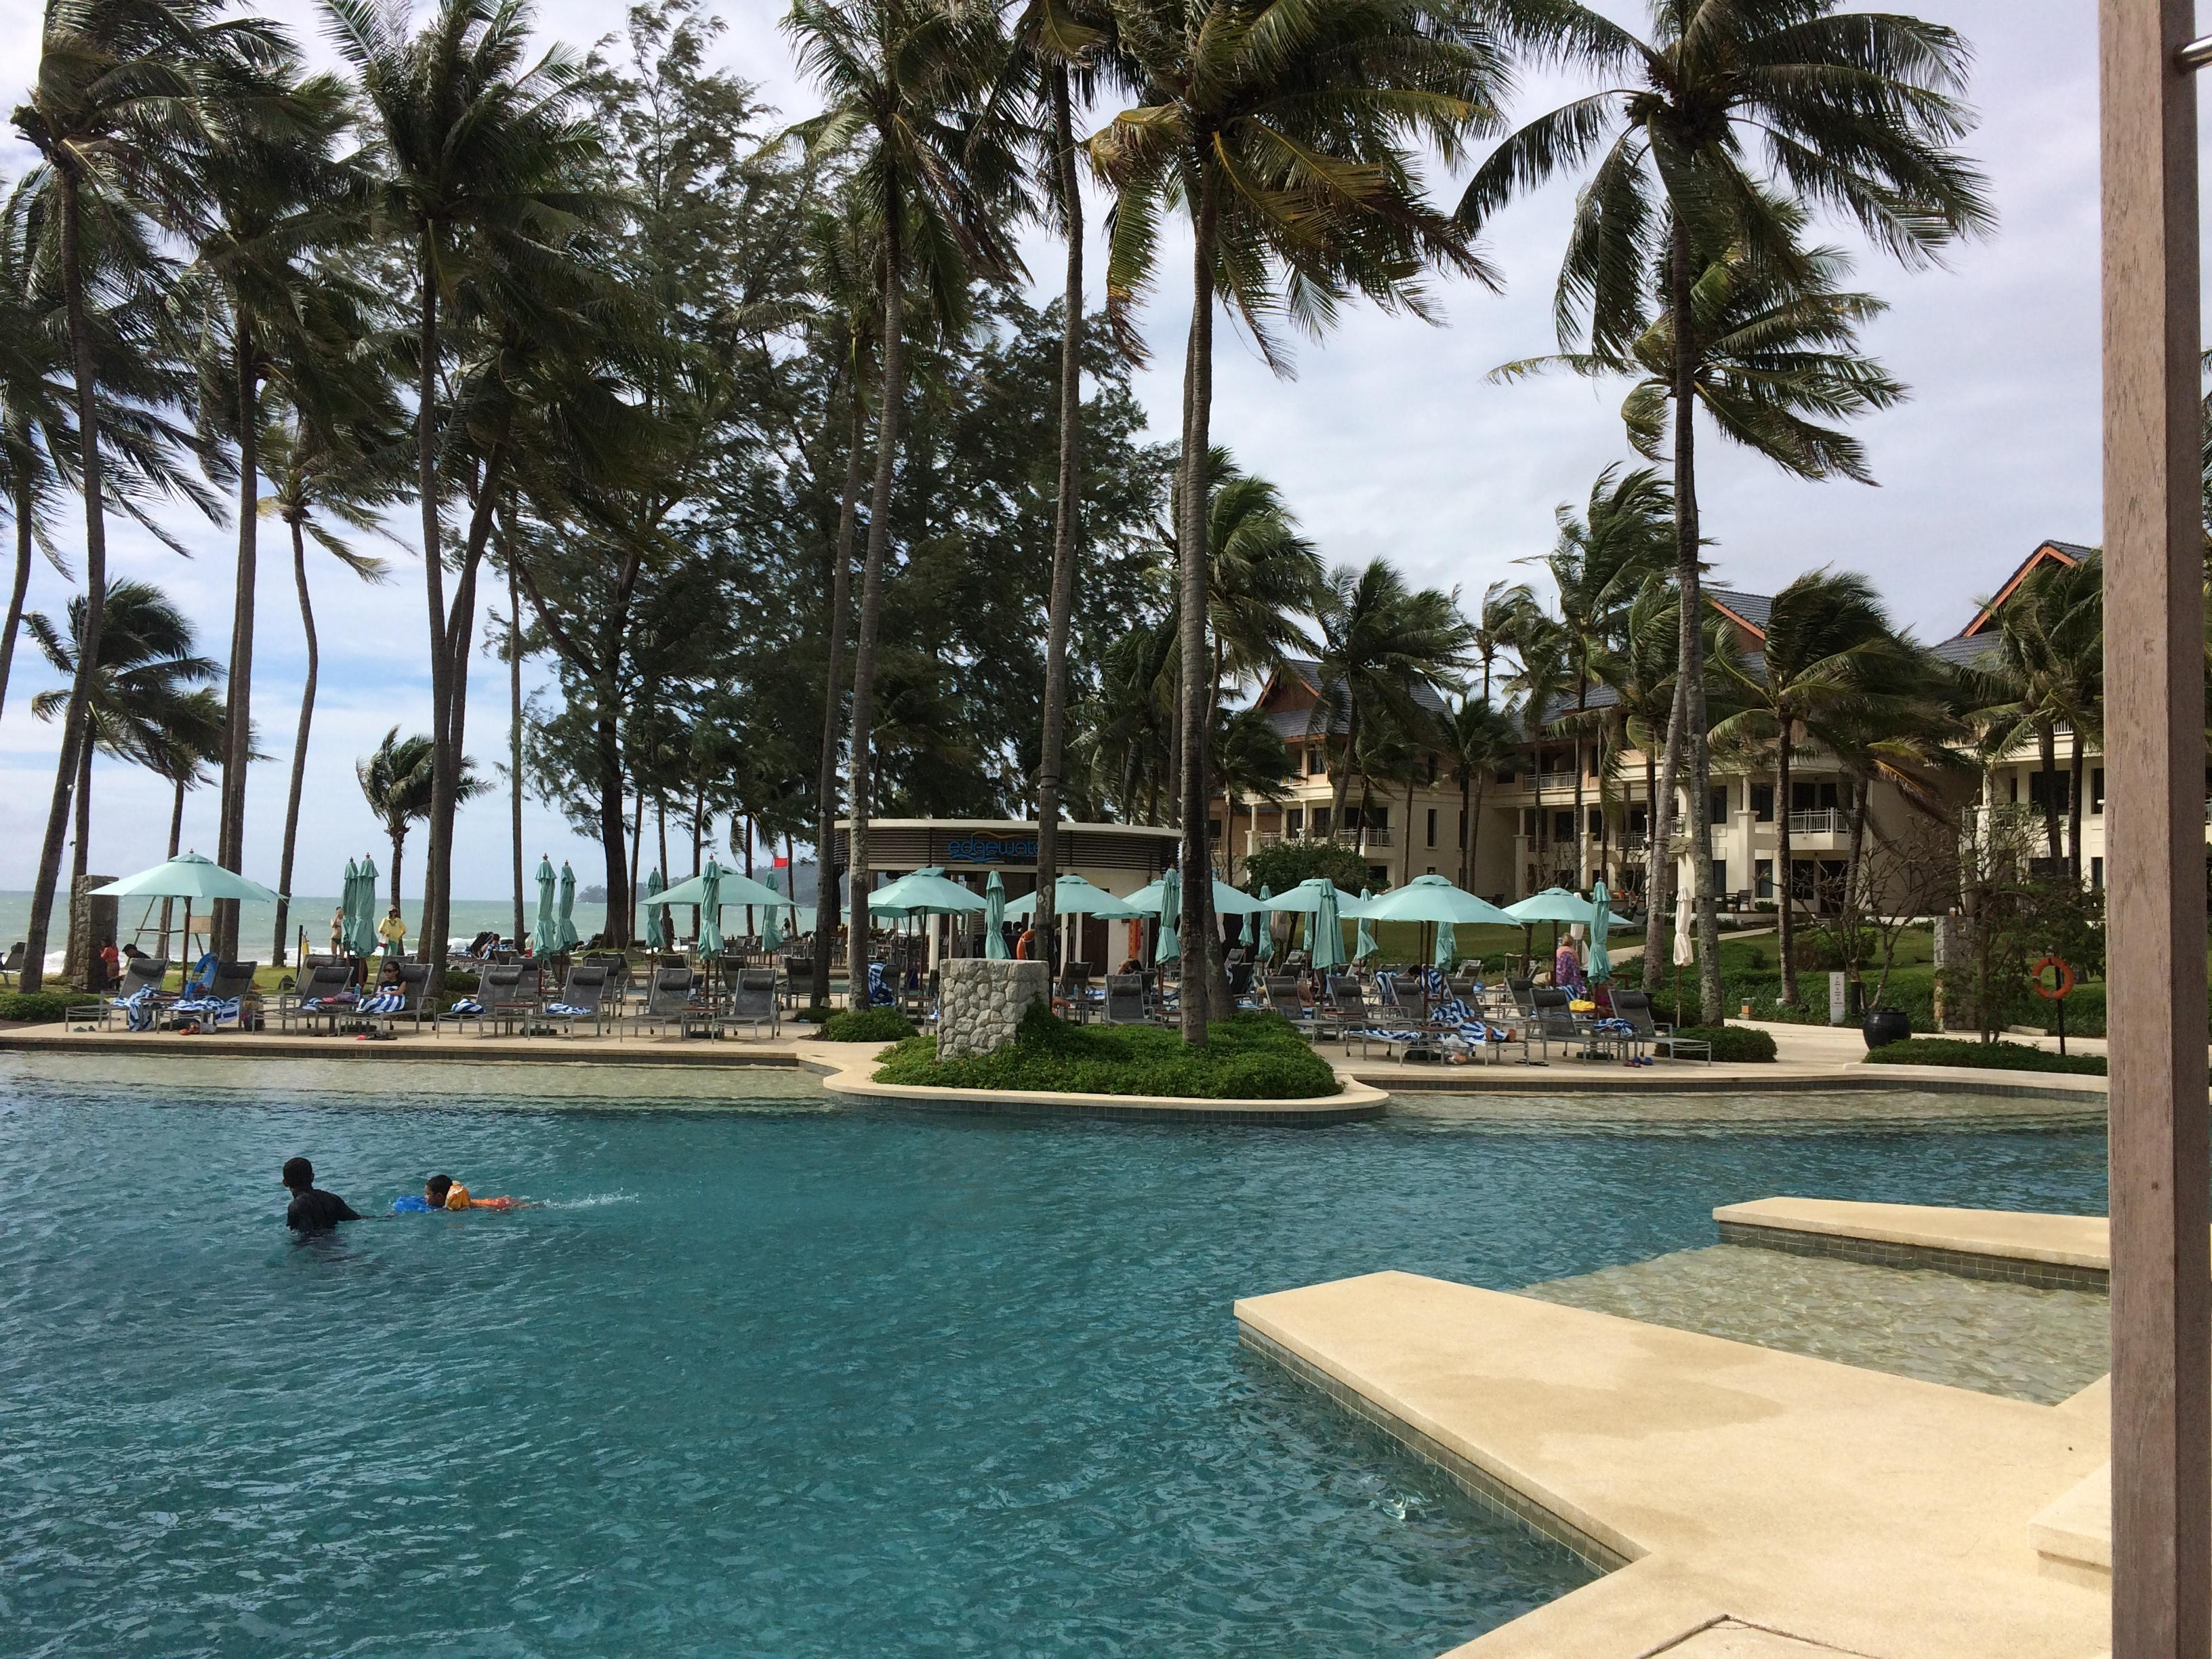 Pool and outrigger bar/restaurant